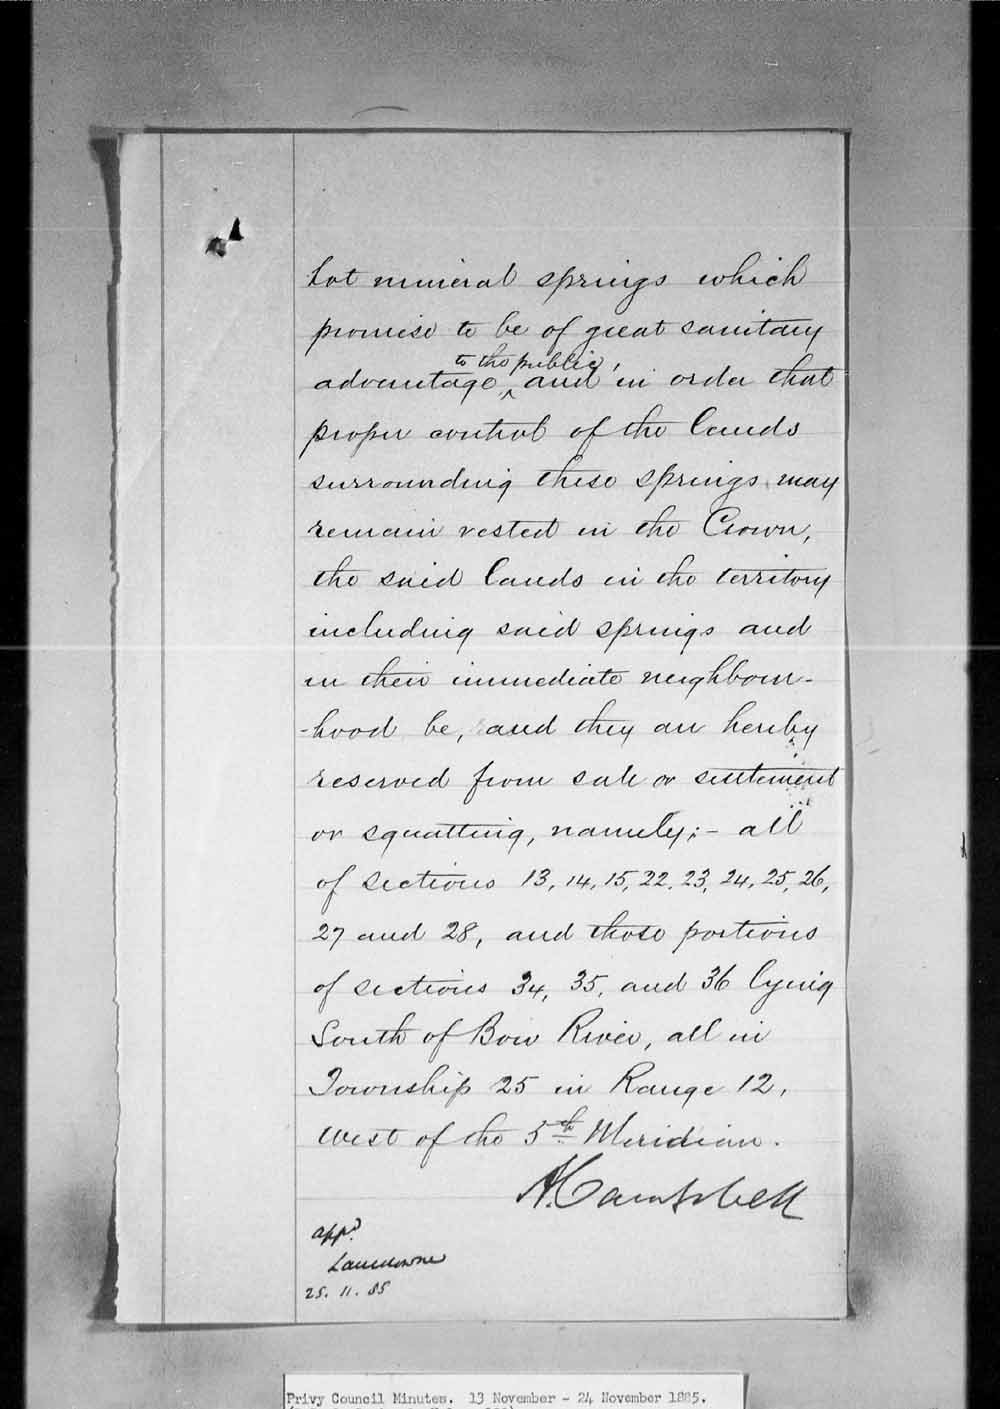 Digitized page of Orders in Council for Image No.: e002659155